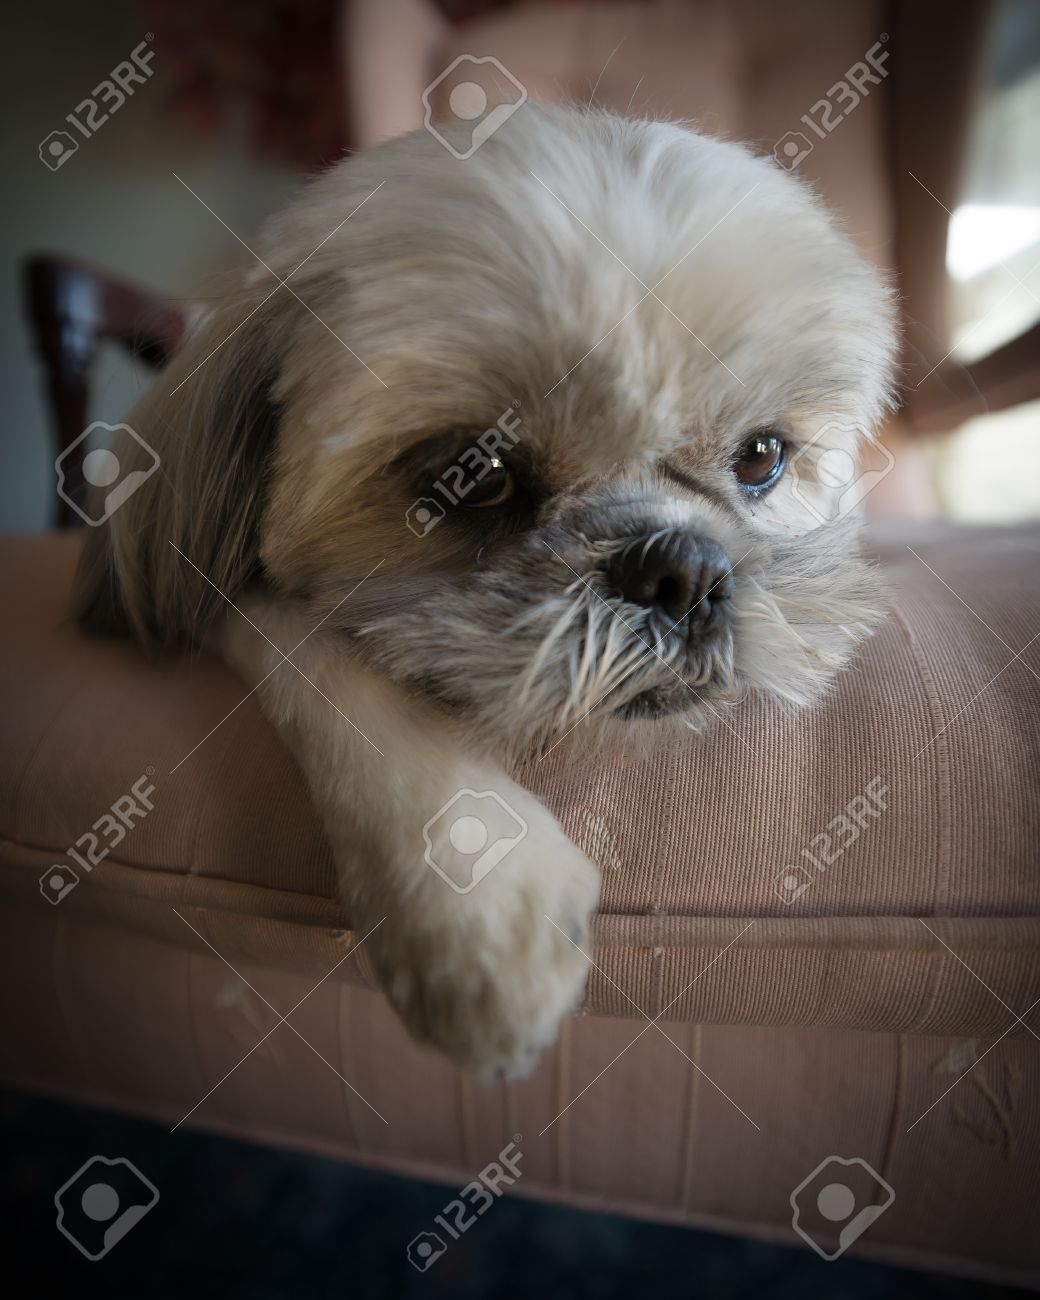 Close-up of a very cute, small, white Shih Tzu puppy dog lazed on a large chair. Stock Photo - 19663712